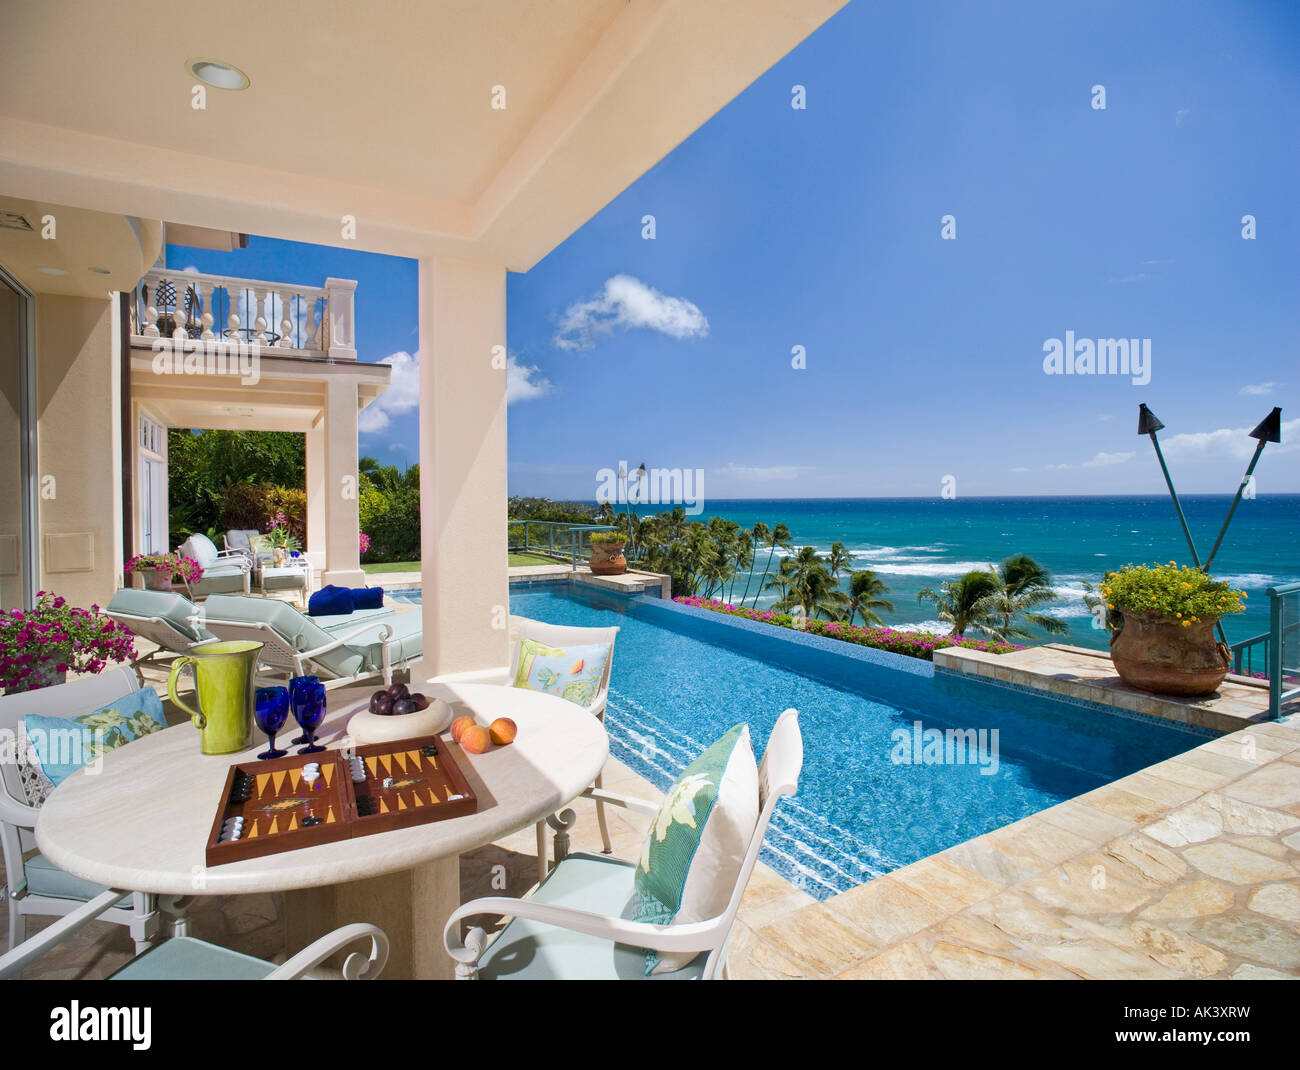 Large Swimming Pool and Deck in Coastal Mansion Stock Photo